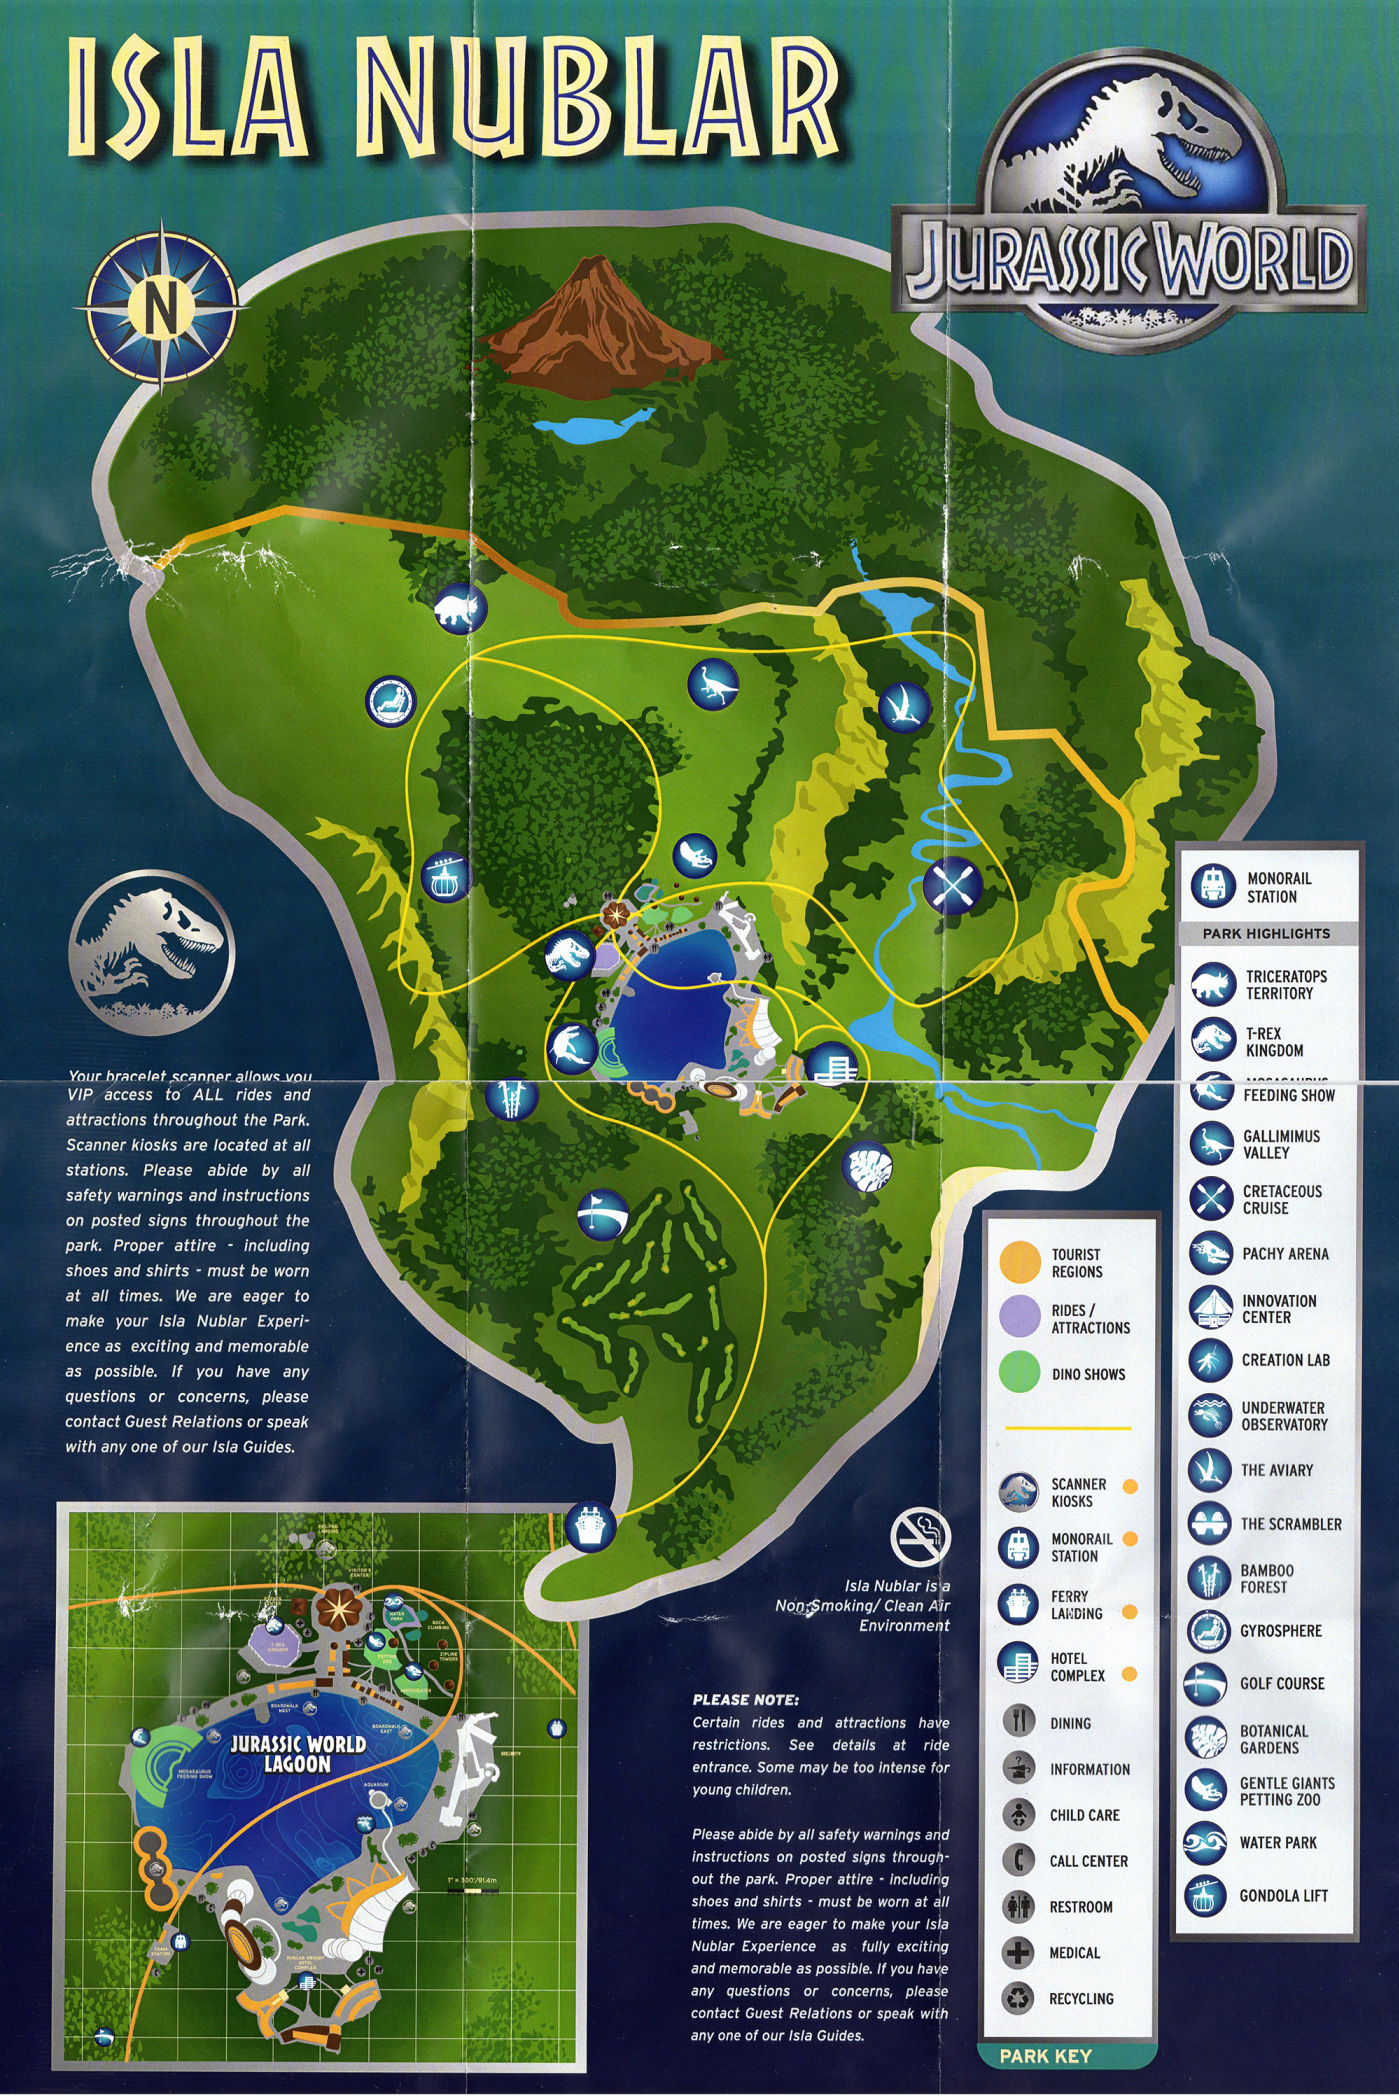 Image jurassic world map fullg jurassic park wiki fandom jurassic world map fullg gumiabroncs Gallery